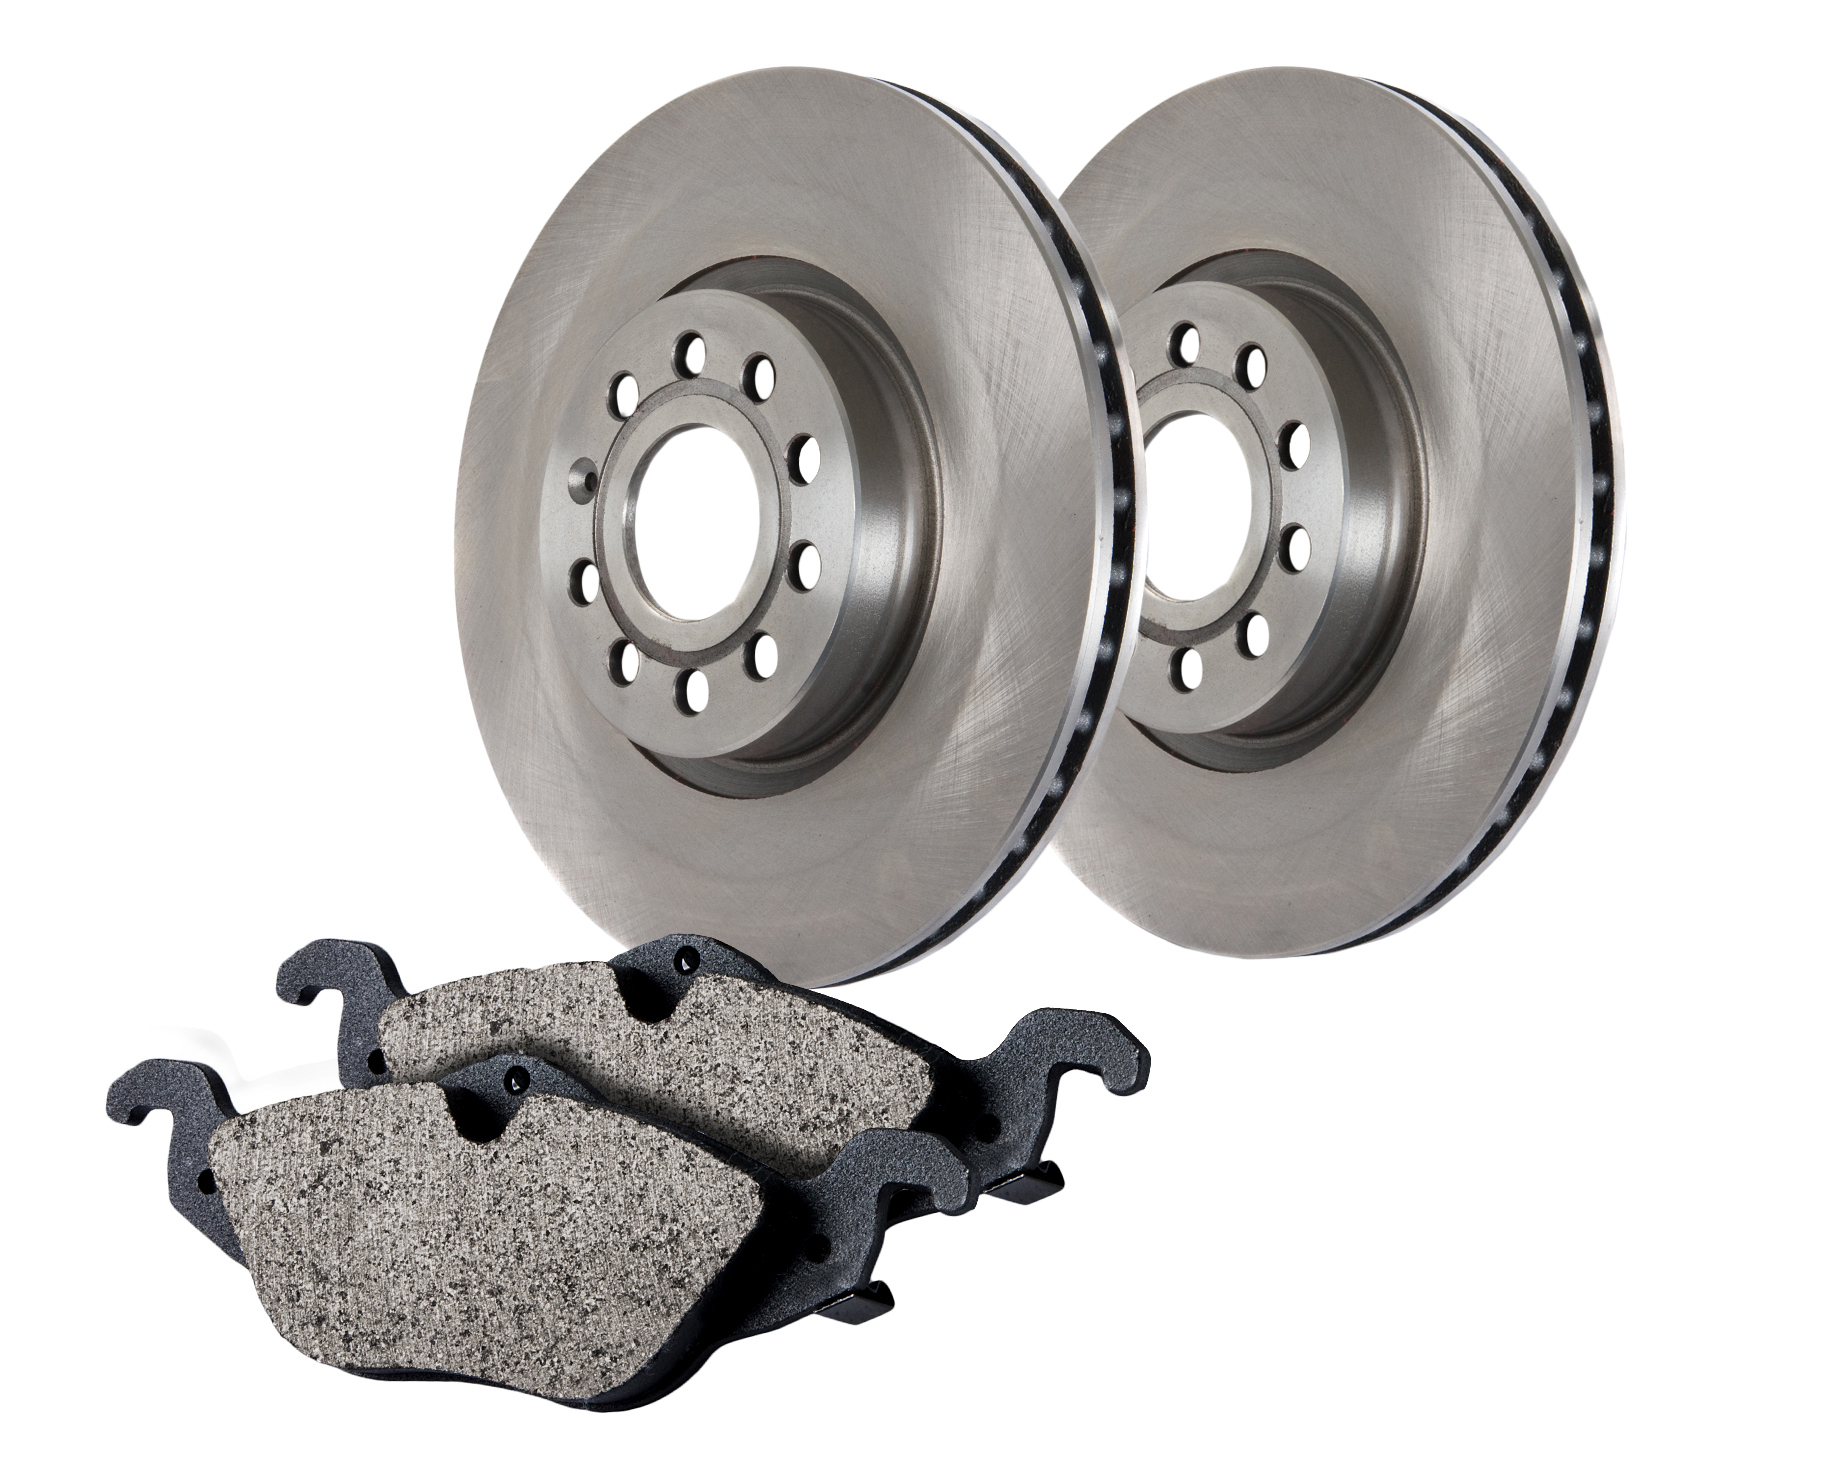 Centric Brake Parts 905.44037 Brake Rotor and Pad Kit, Premium, Semi-Metallic Pads, Iron, Natural, Lexus / Toyota, Kit